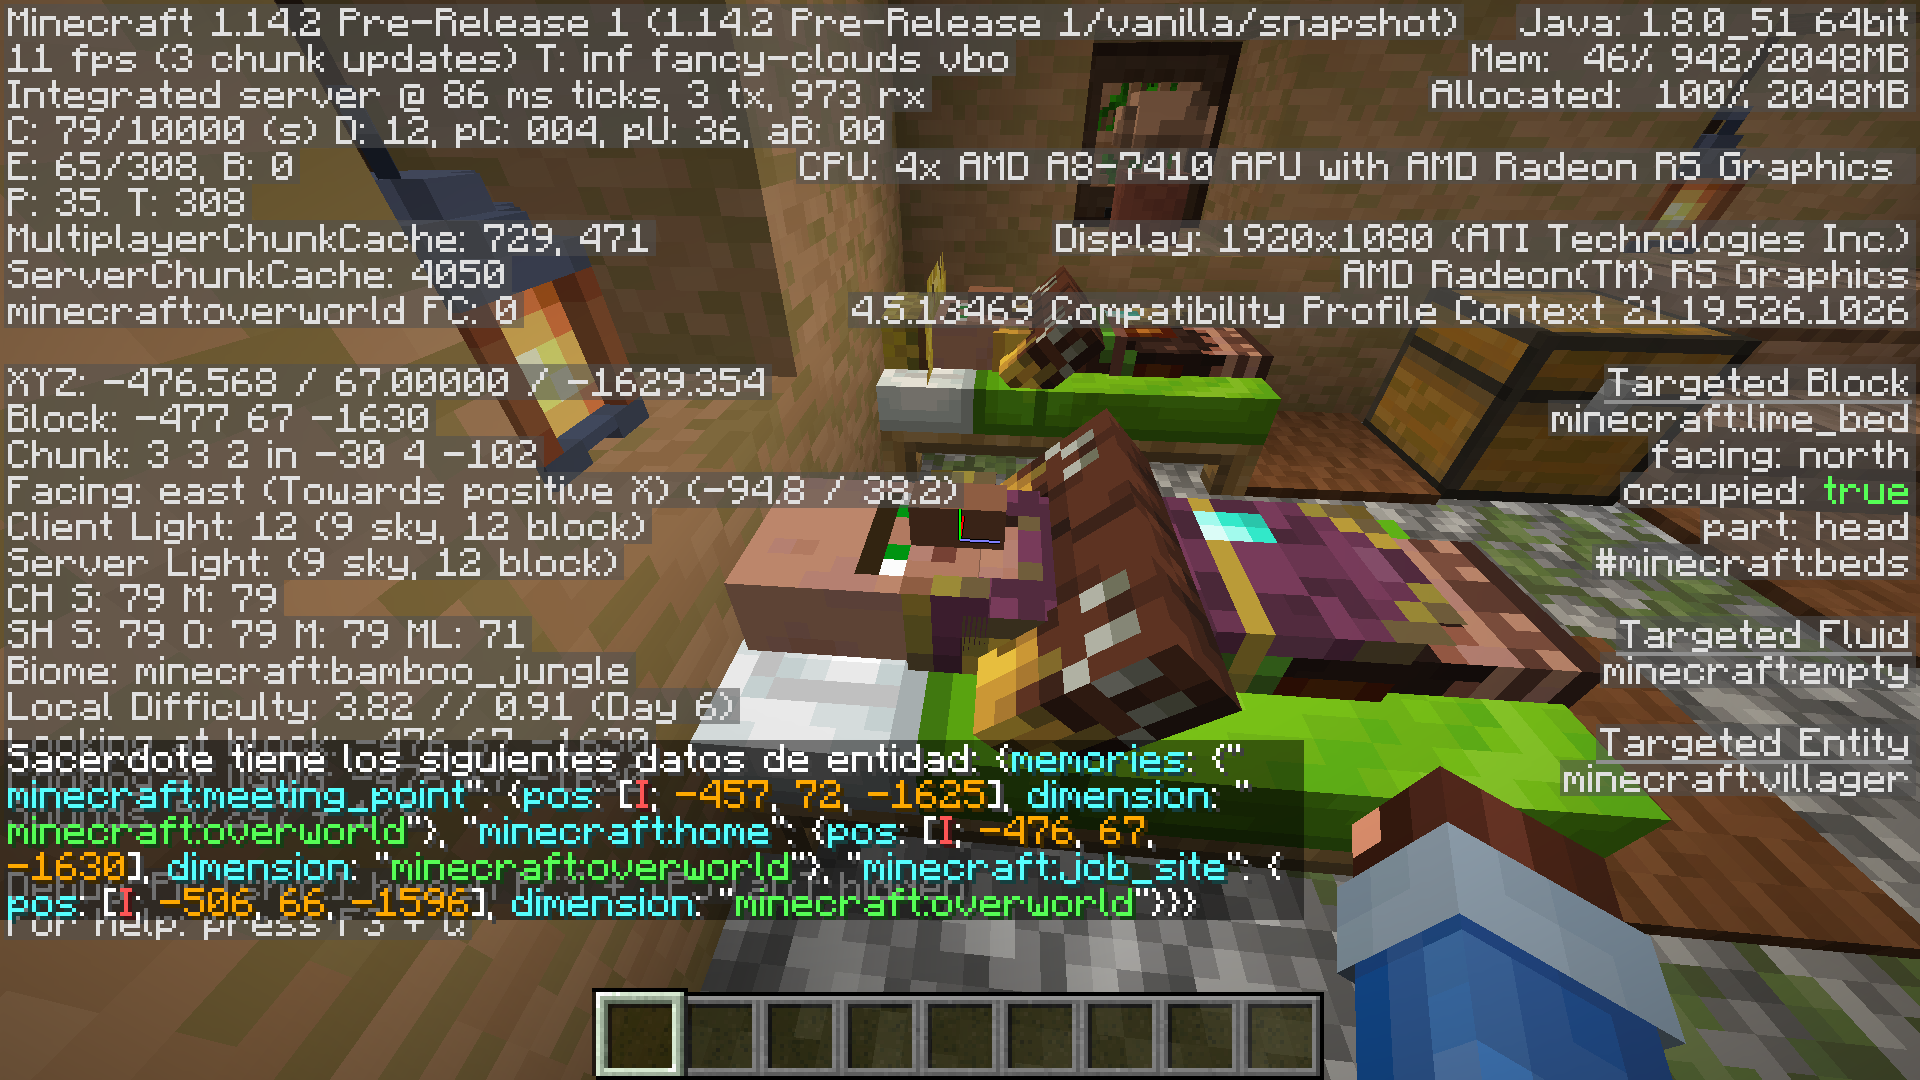 MC-151225] Upgrading Worlds from 1 14 causes Villagers to lose their